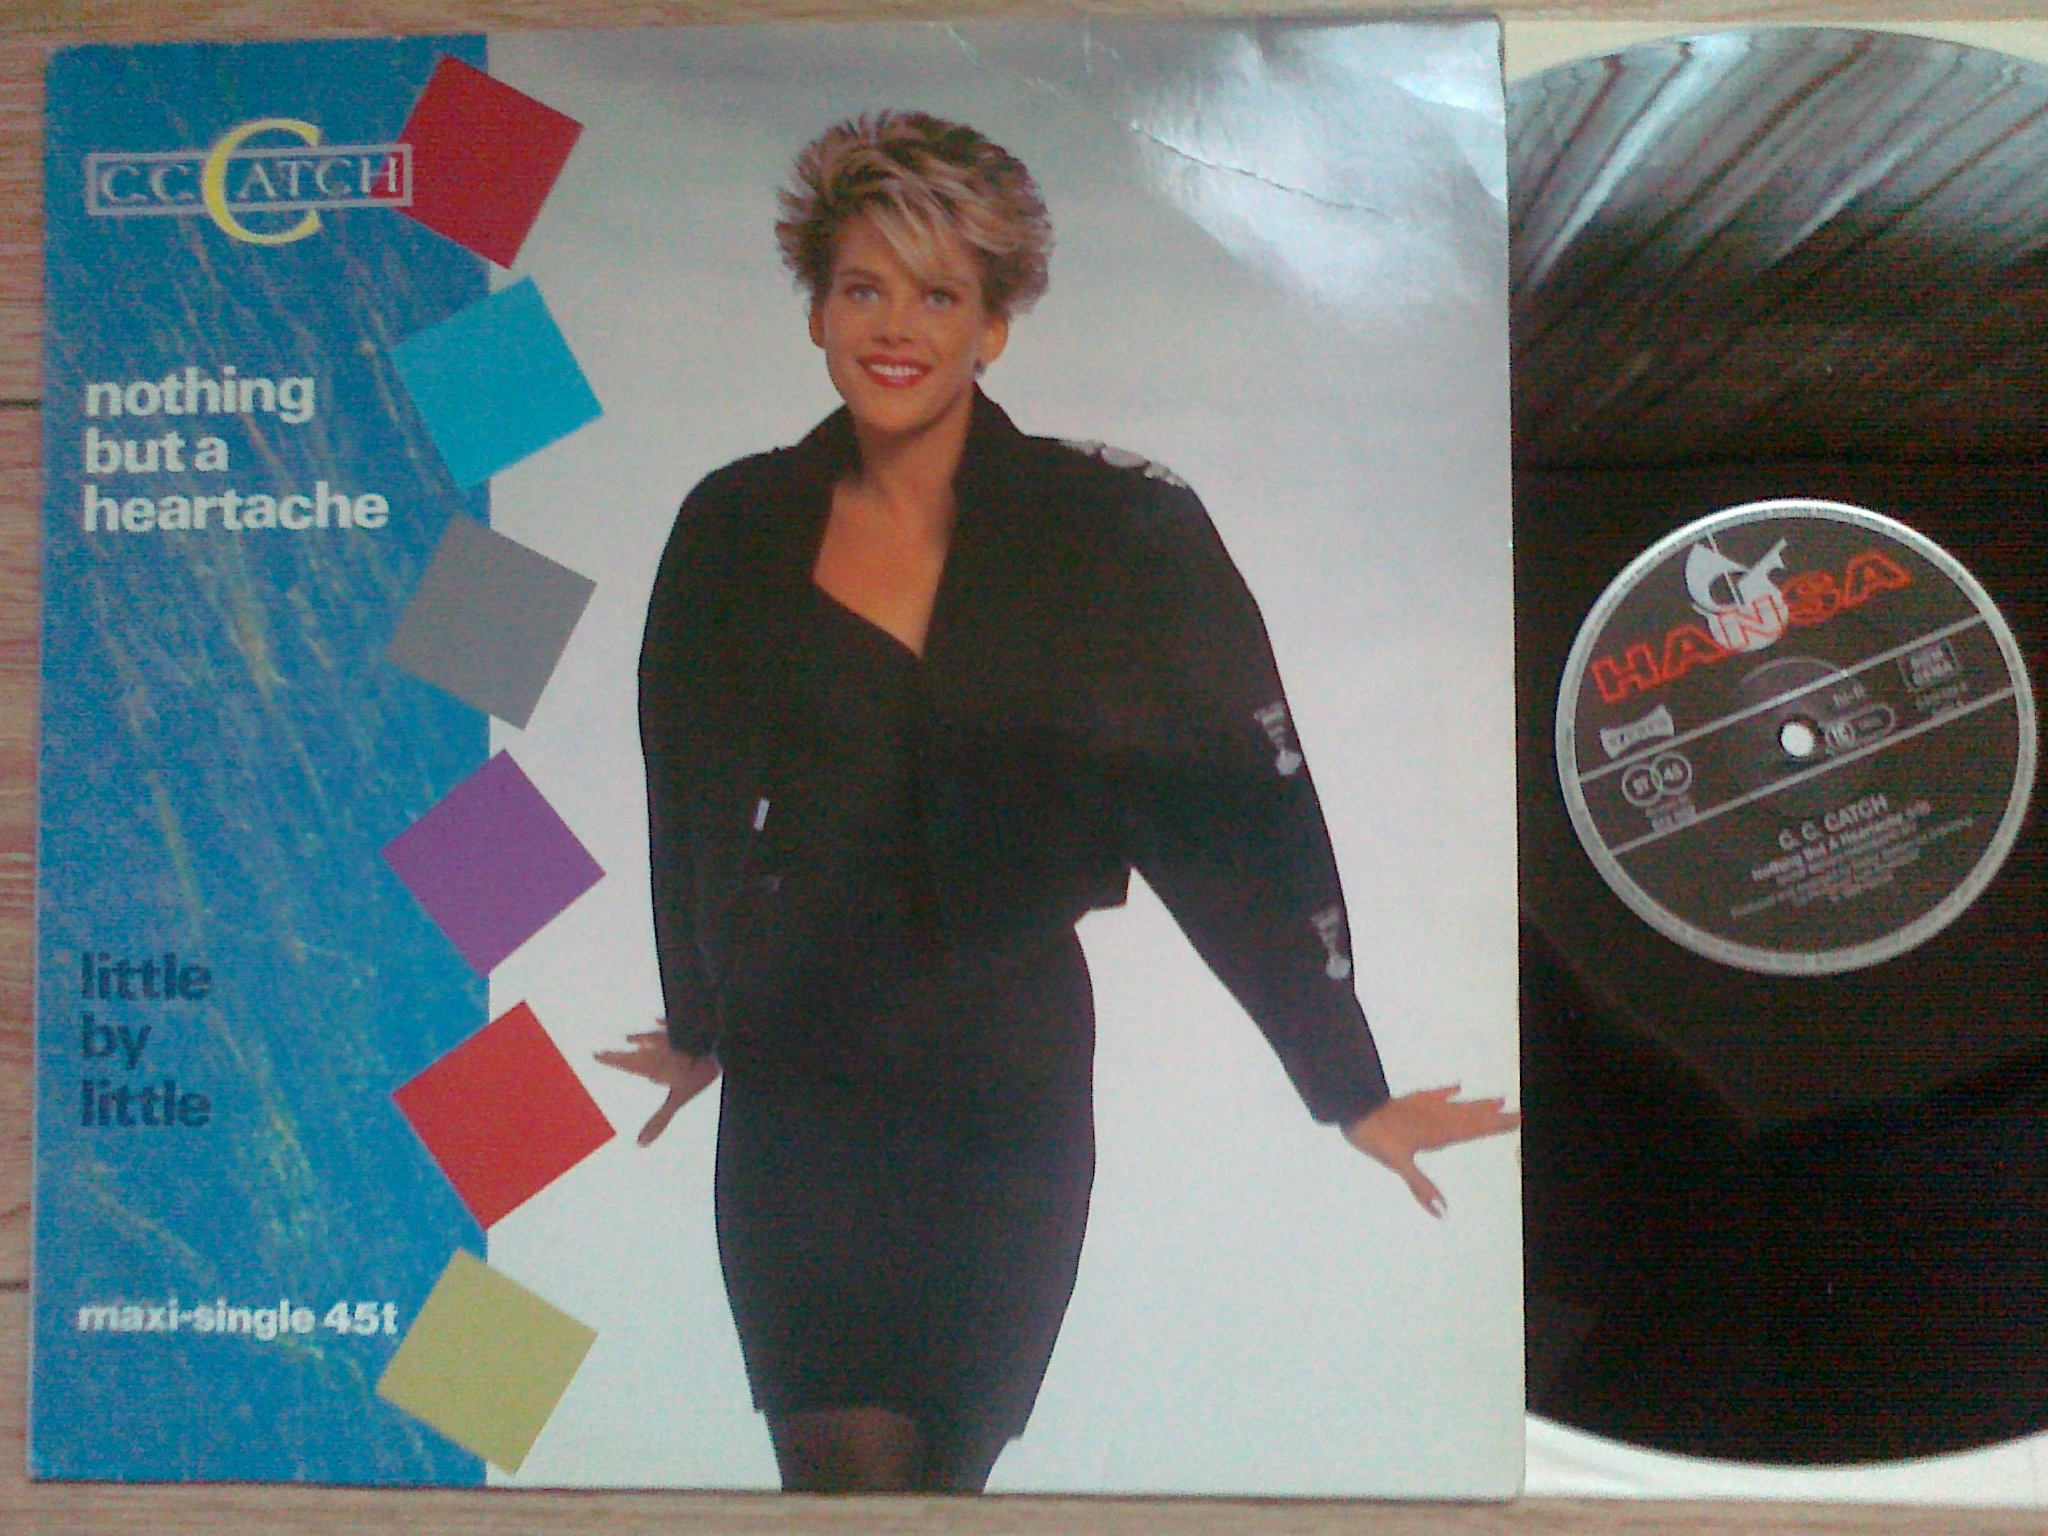 C. C. Catch - Nothing But a Hearache